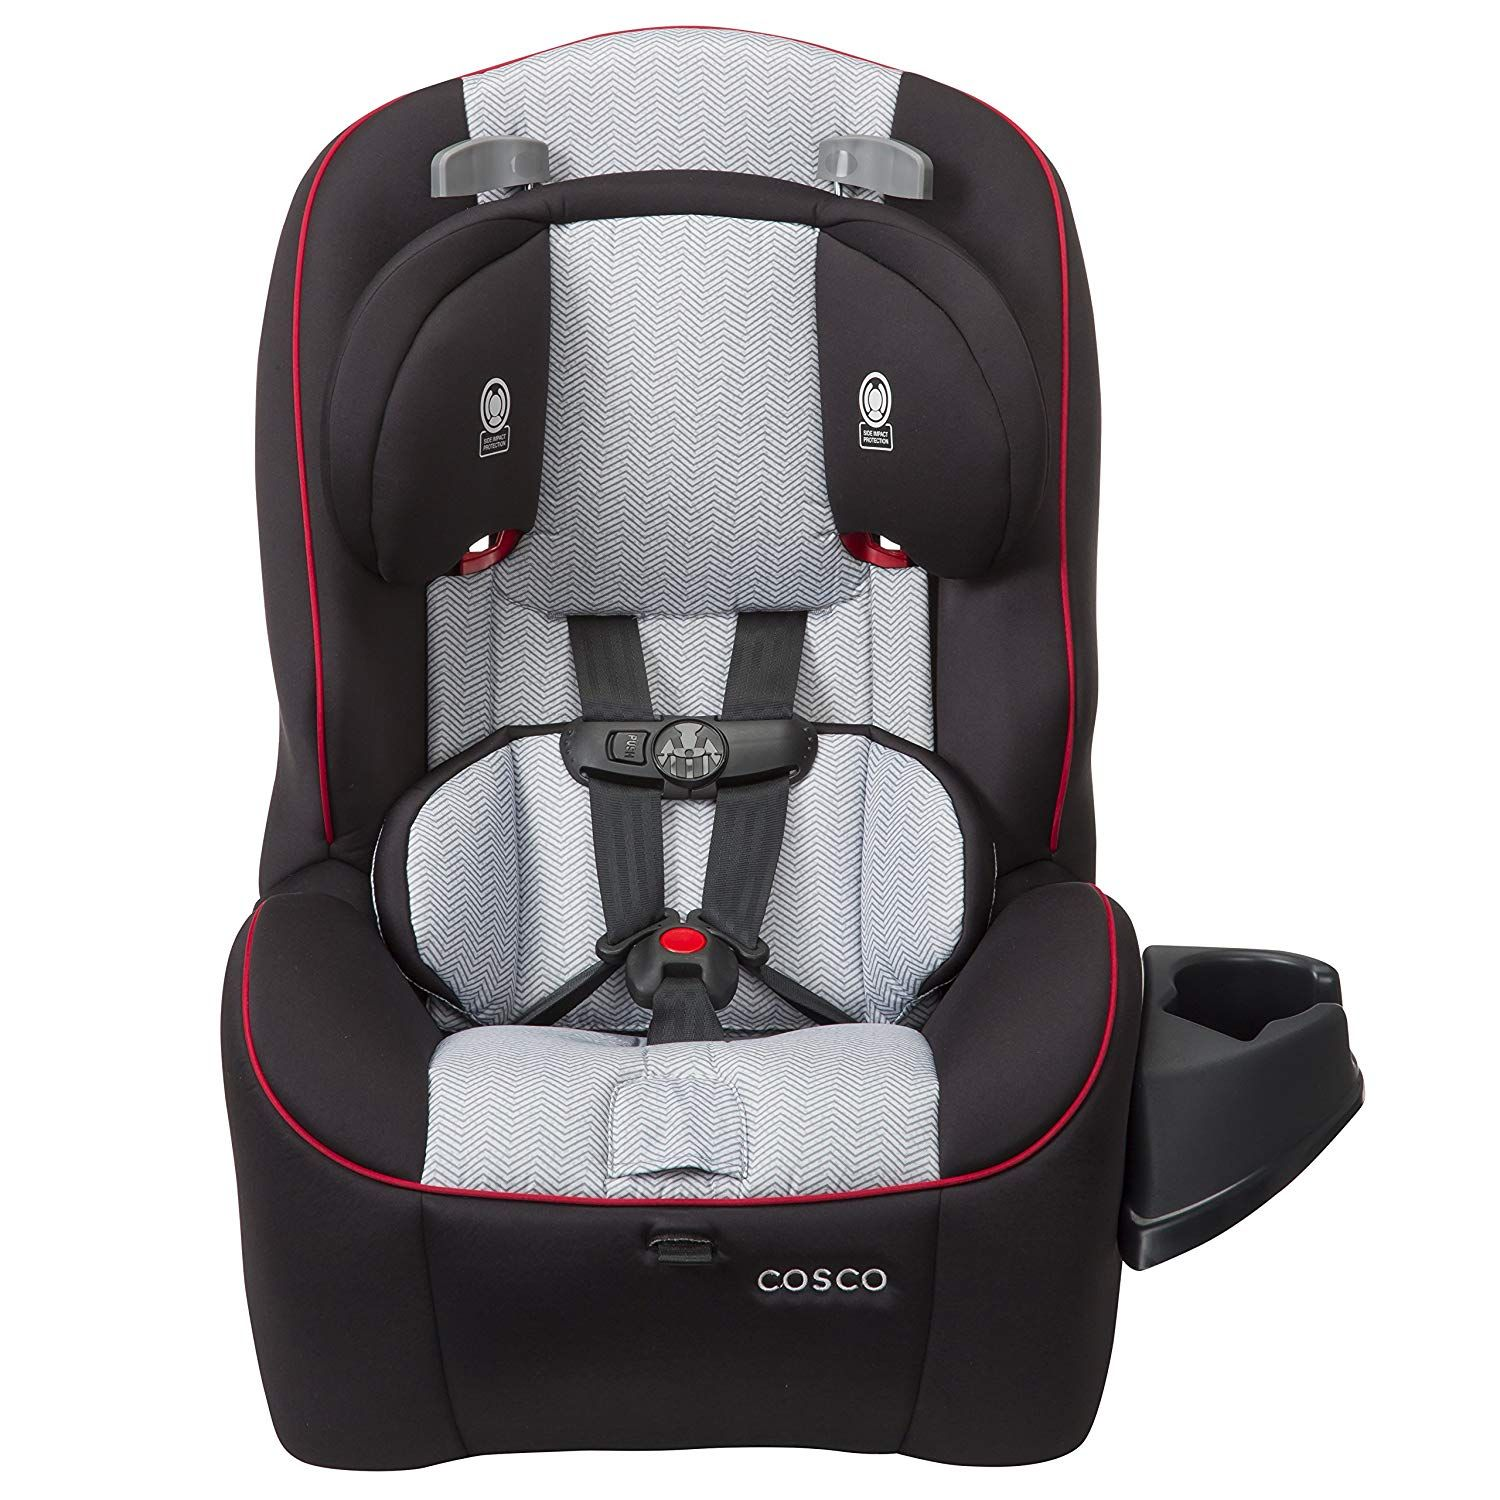 21+ Cosco stroller and car seat reviews information